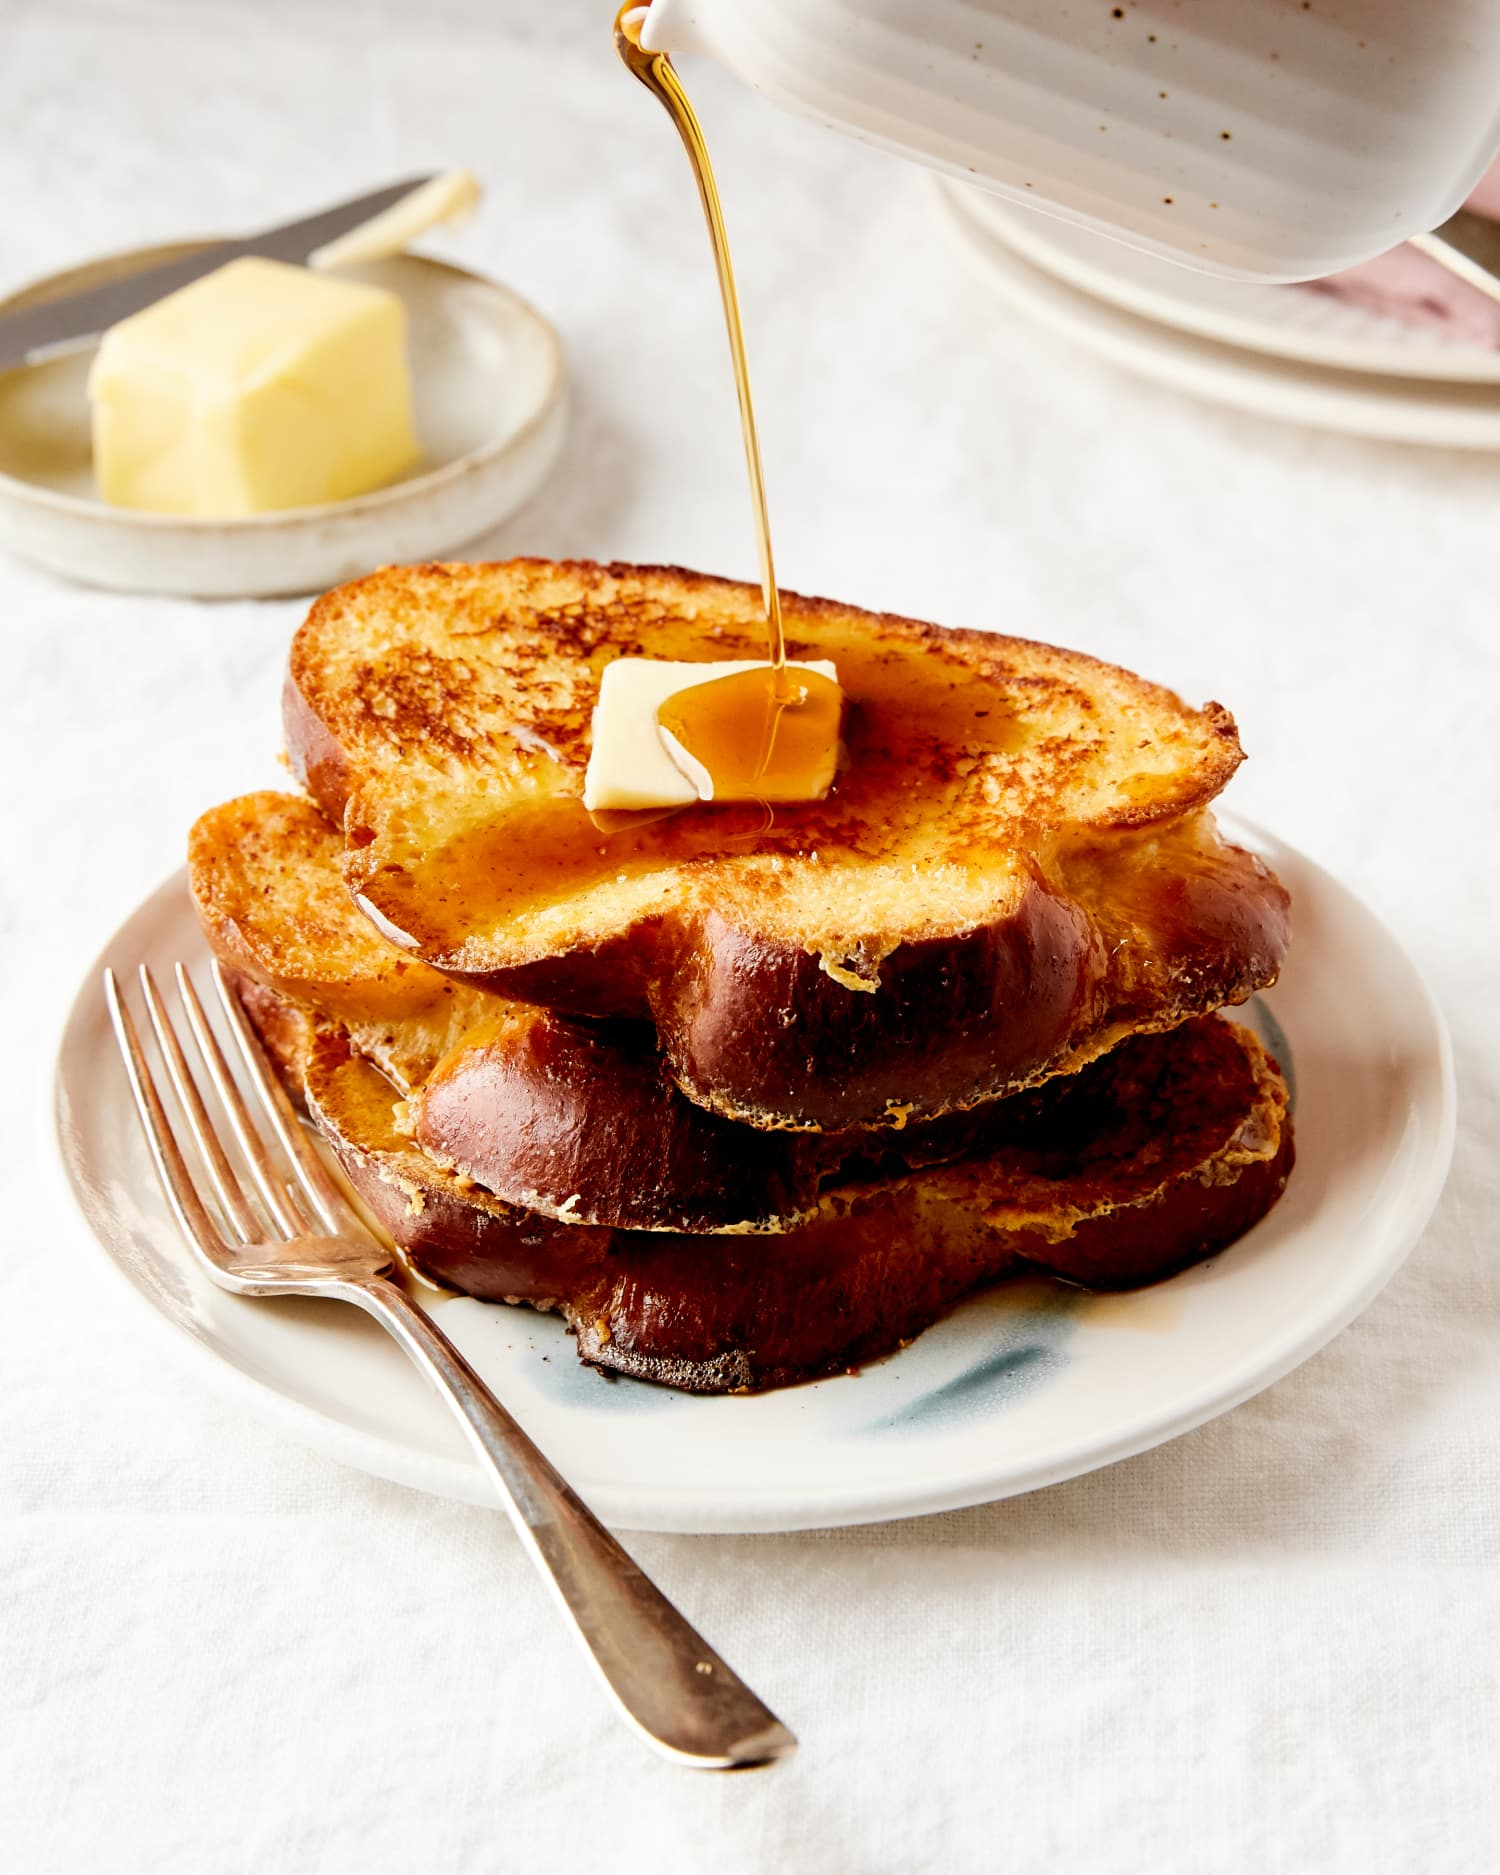 This Double-Dipping Technique Is the Secret to the Best French Toast of Your Life